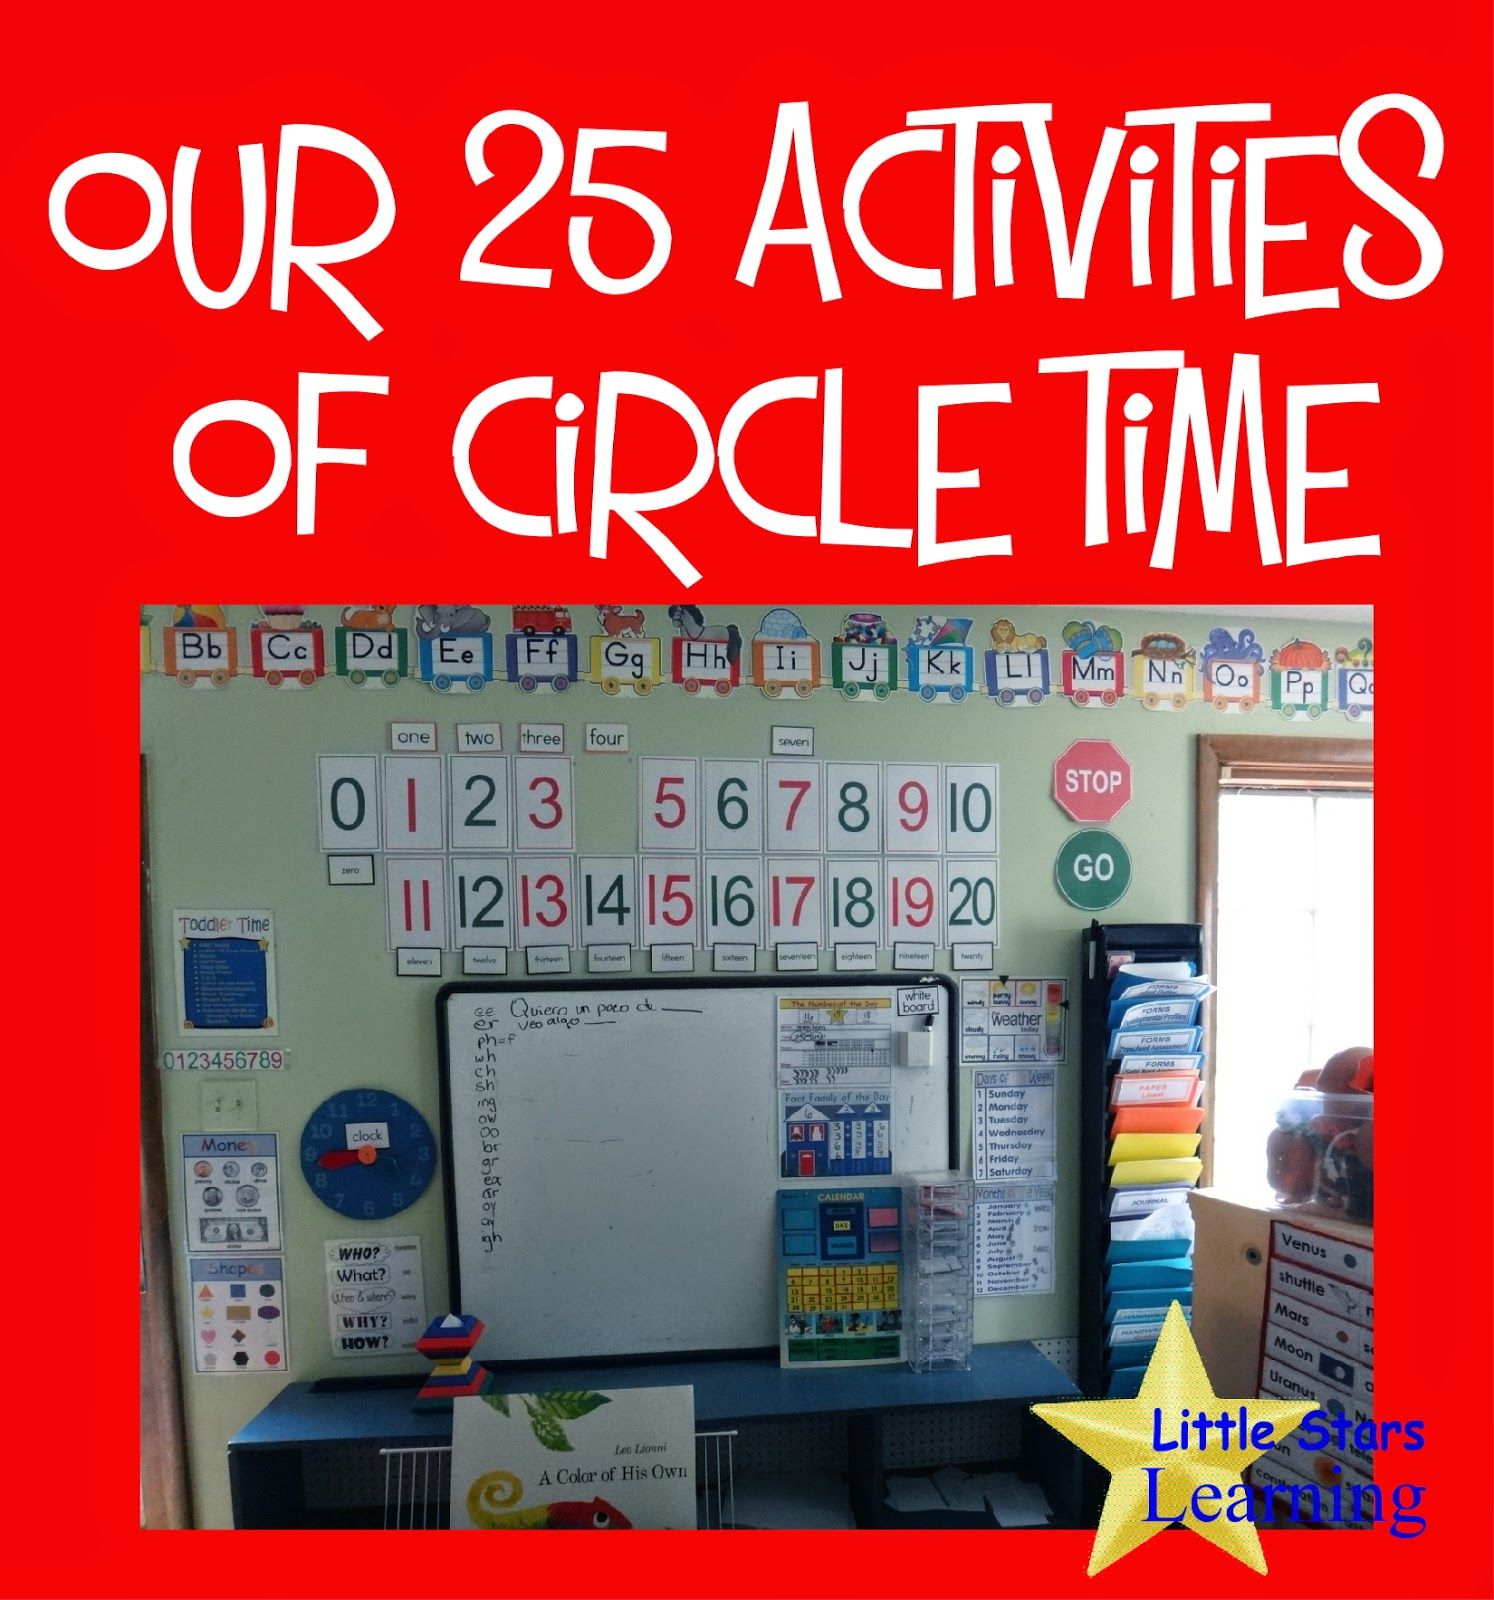 Little Stars Learning Our 25 Activities Of Circle Time